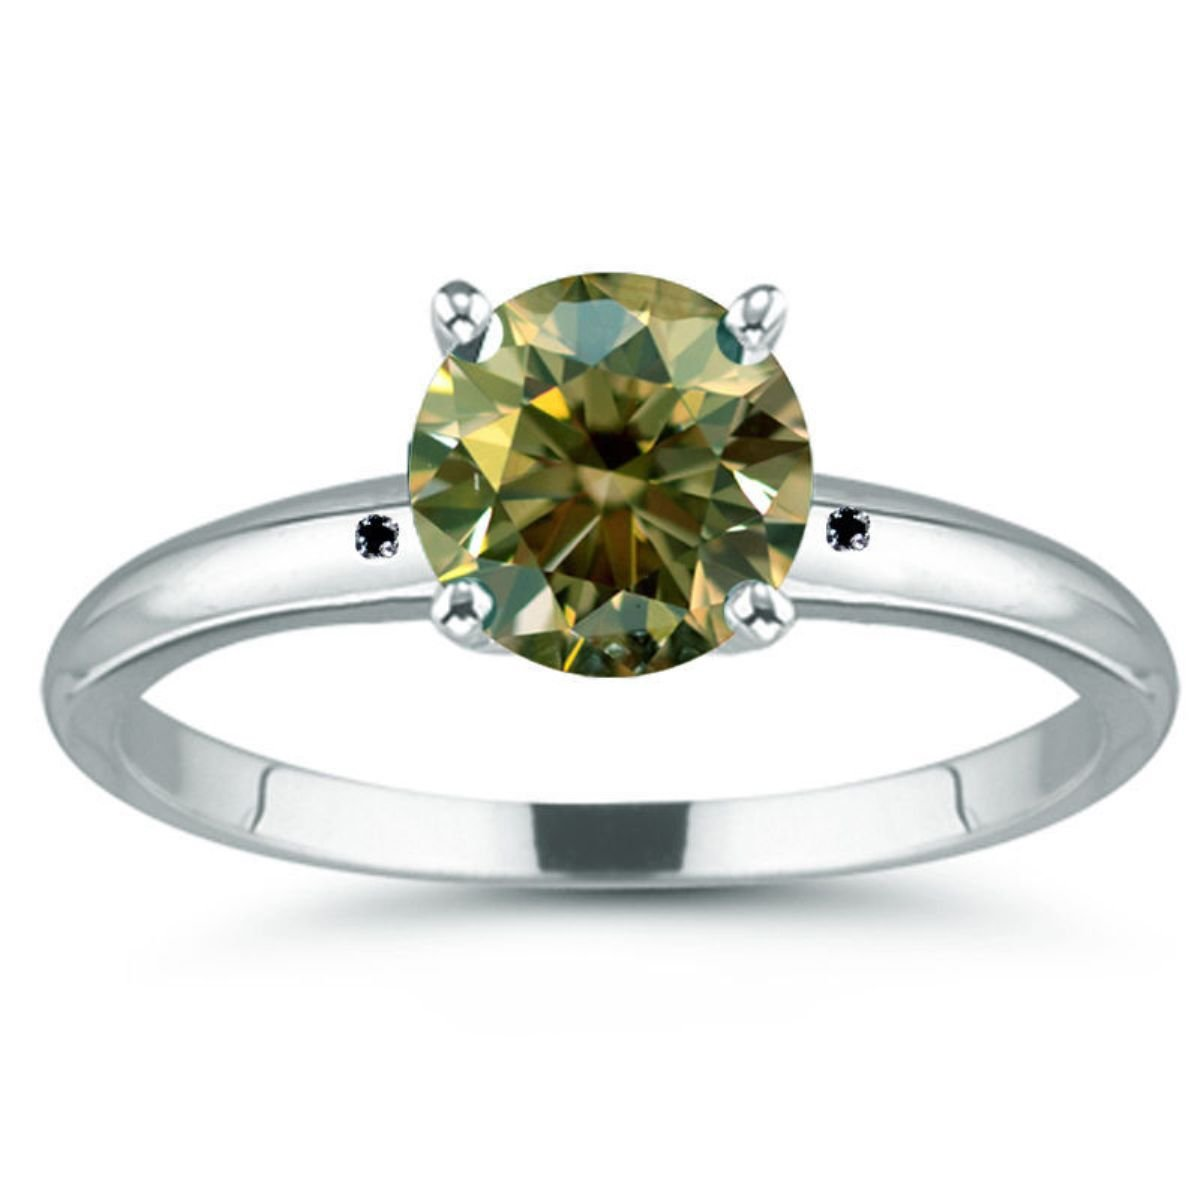 RINGJEWEL 3.27 ct VVS1 Round Moissanite Solitaire Engagement Silver Plated Ring Green Brown Color Size 7